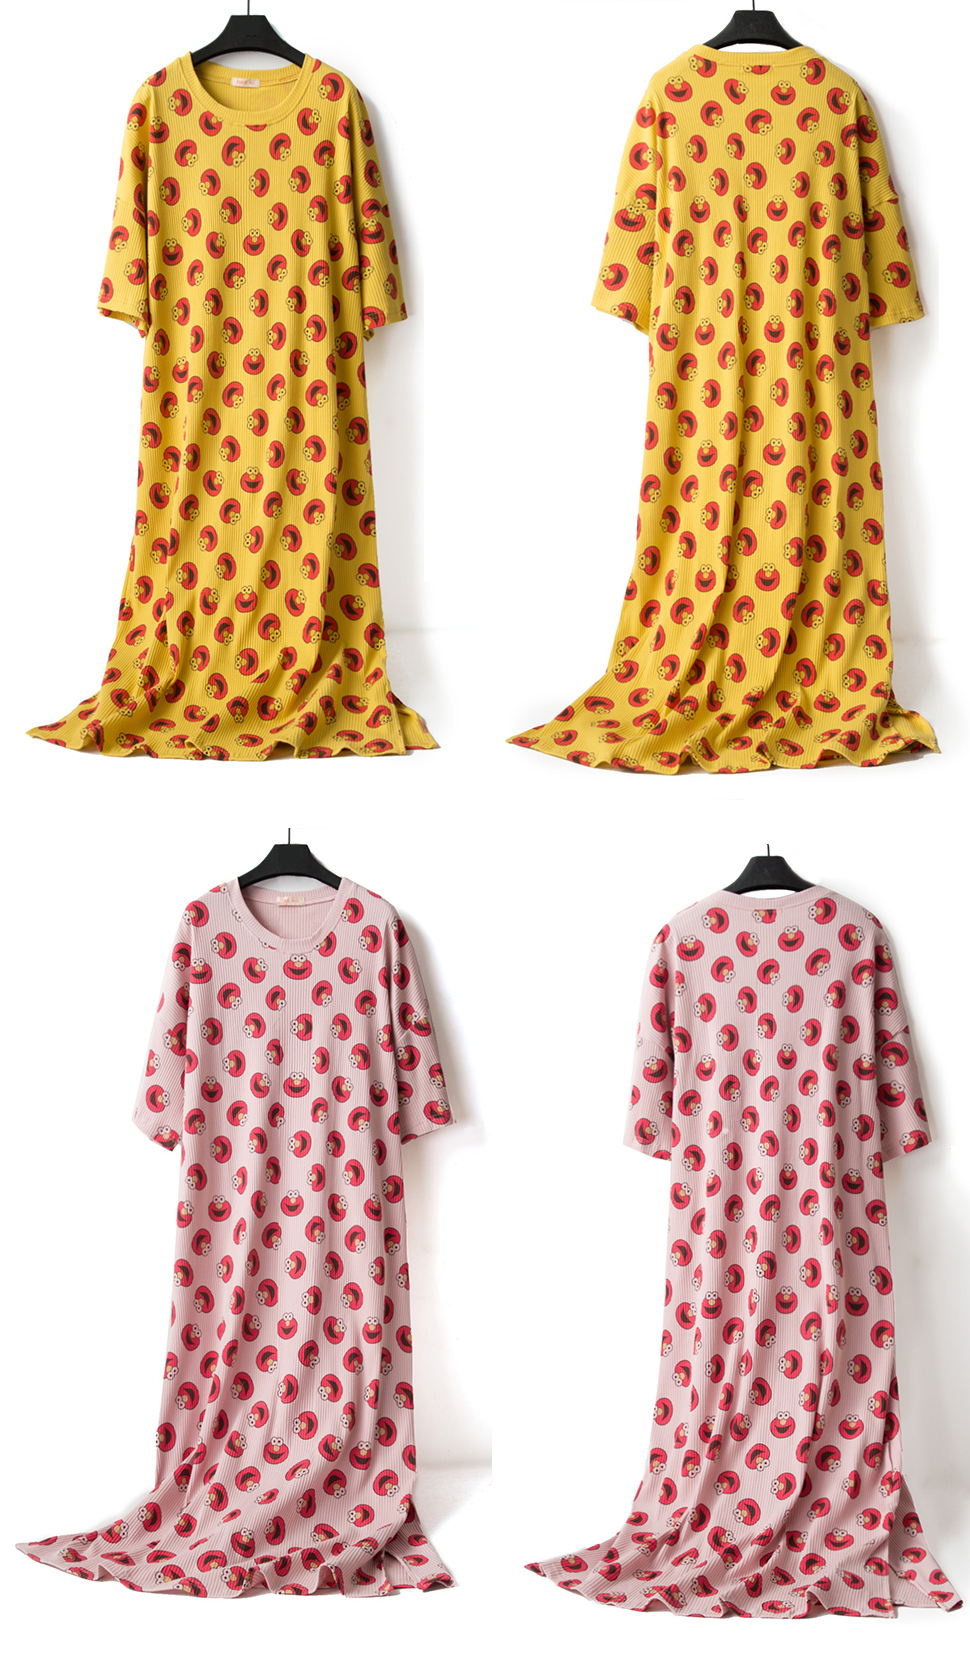 Summer-Cotton-Comfy-Print-Casual-Sweat-Overhead-Nightgown-1529843